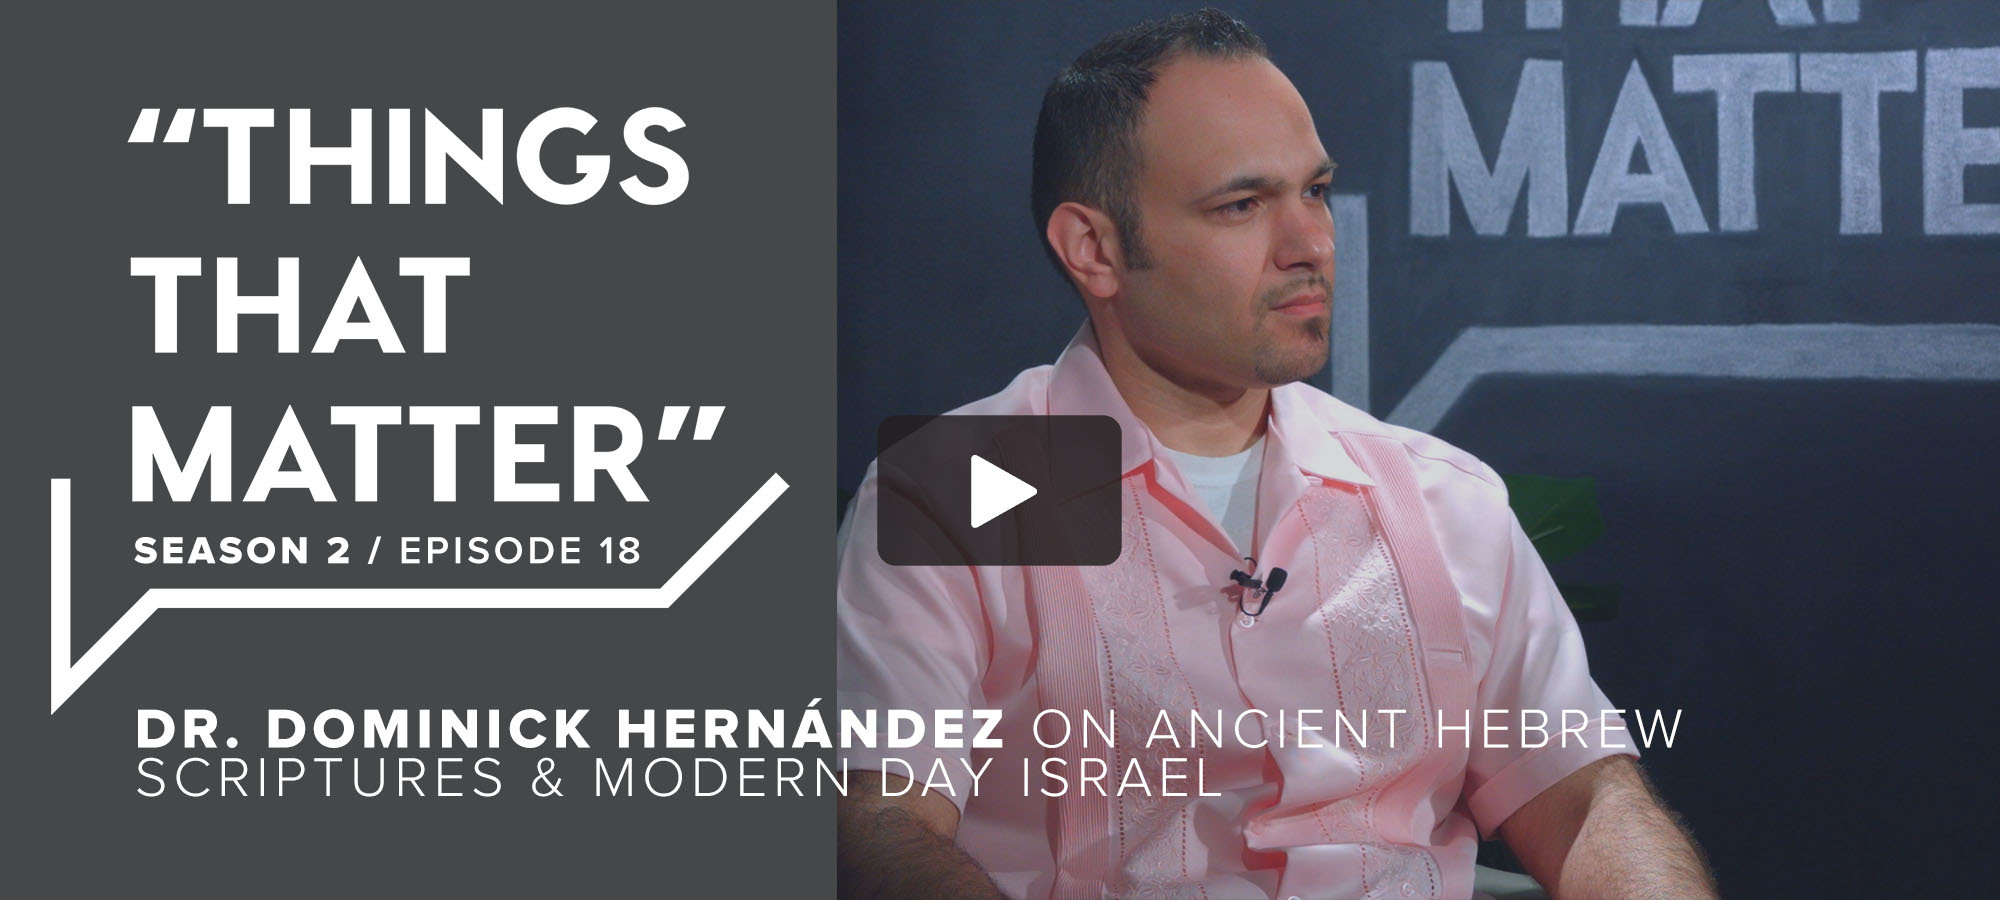 TTM S2 E18 - Dr. Dominick Hernández on Ancient Hebrew Scriptures & Modern Day Israel